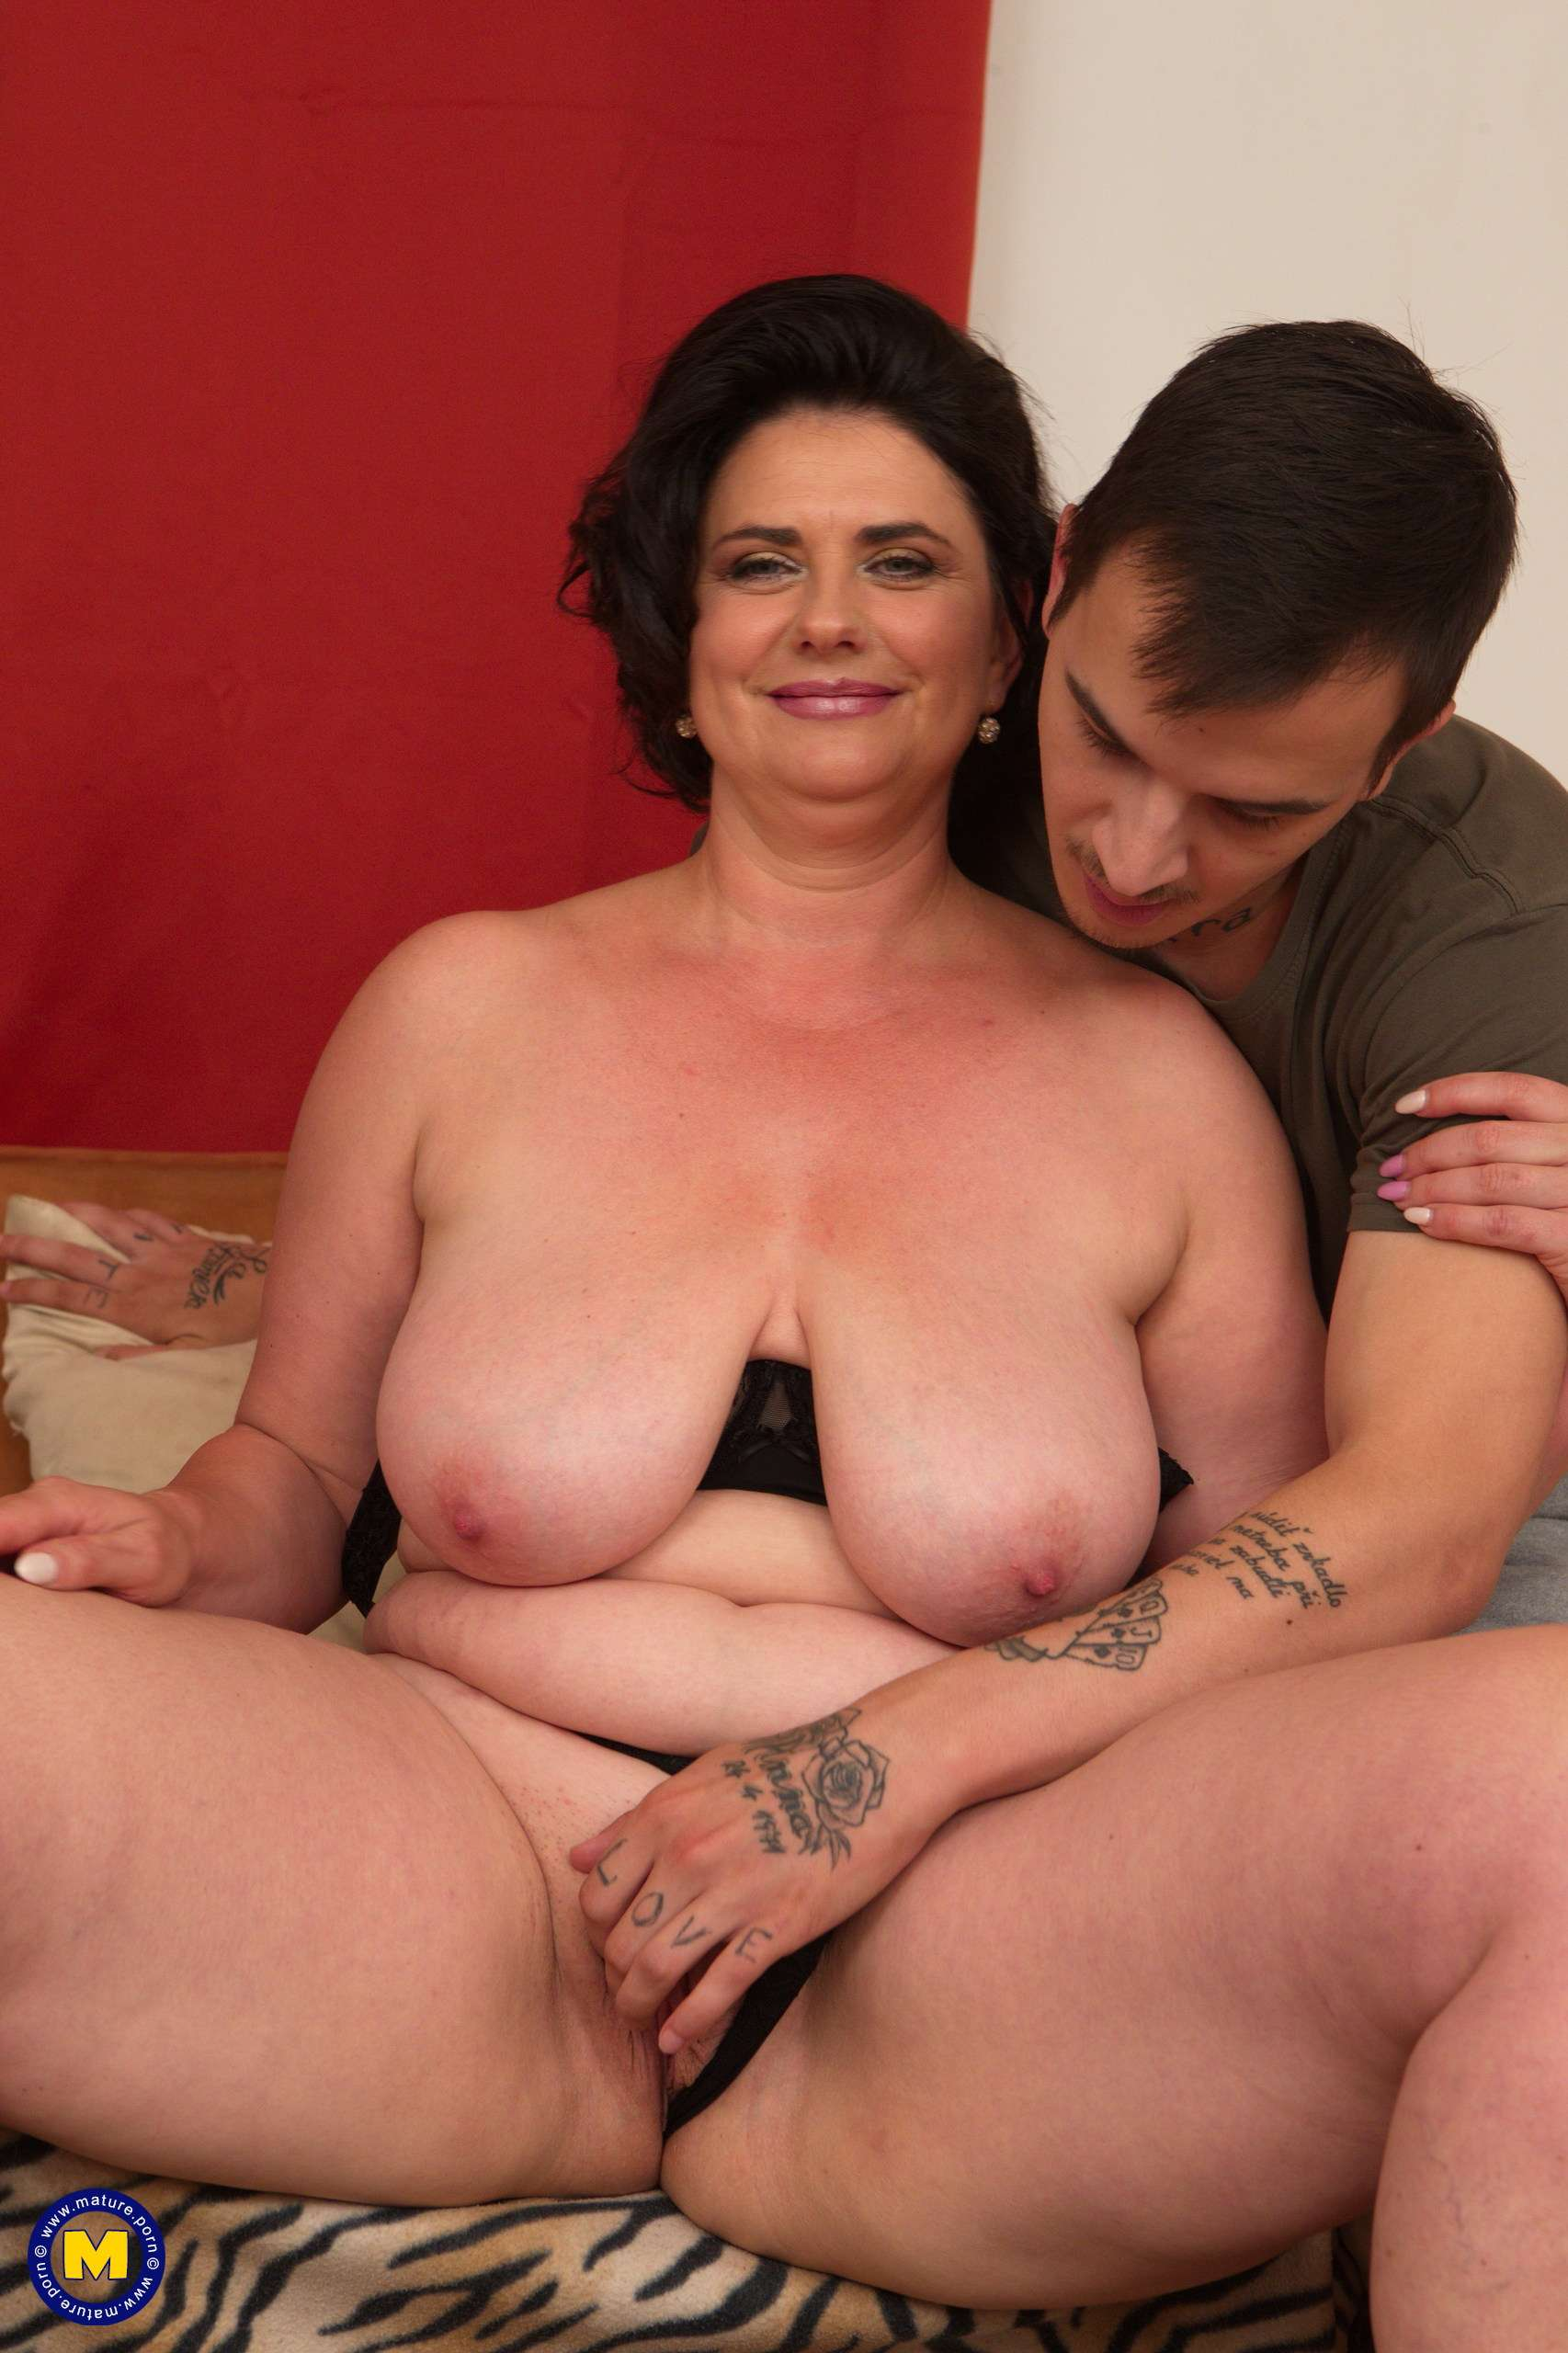 Bbw cougar porn pictures and chubby milf sex galleries